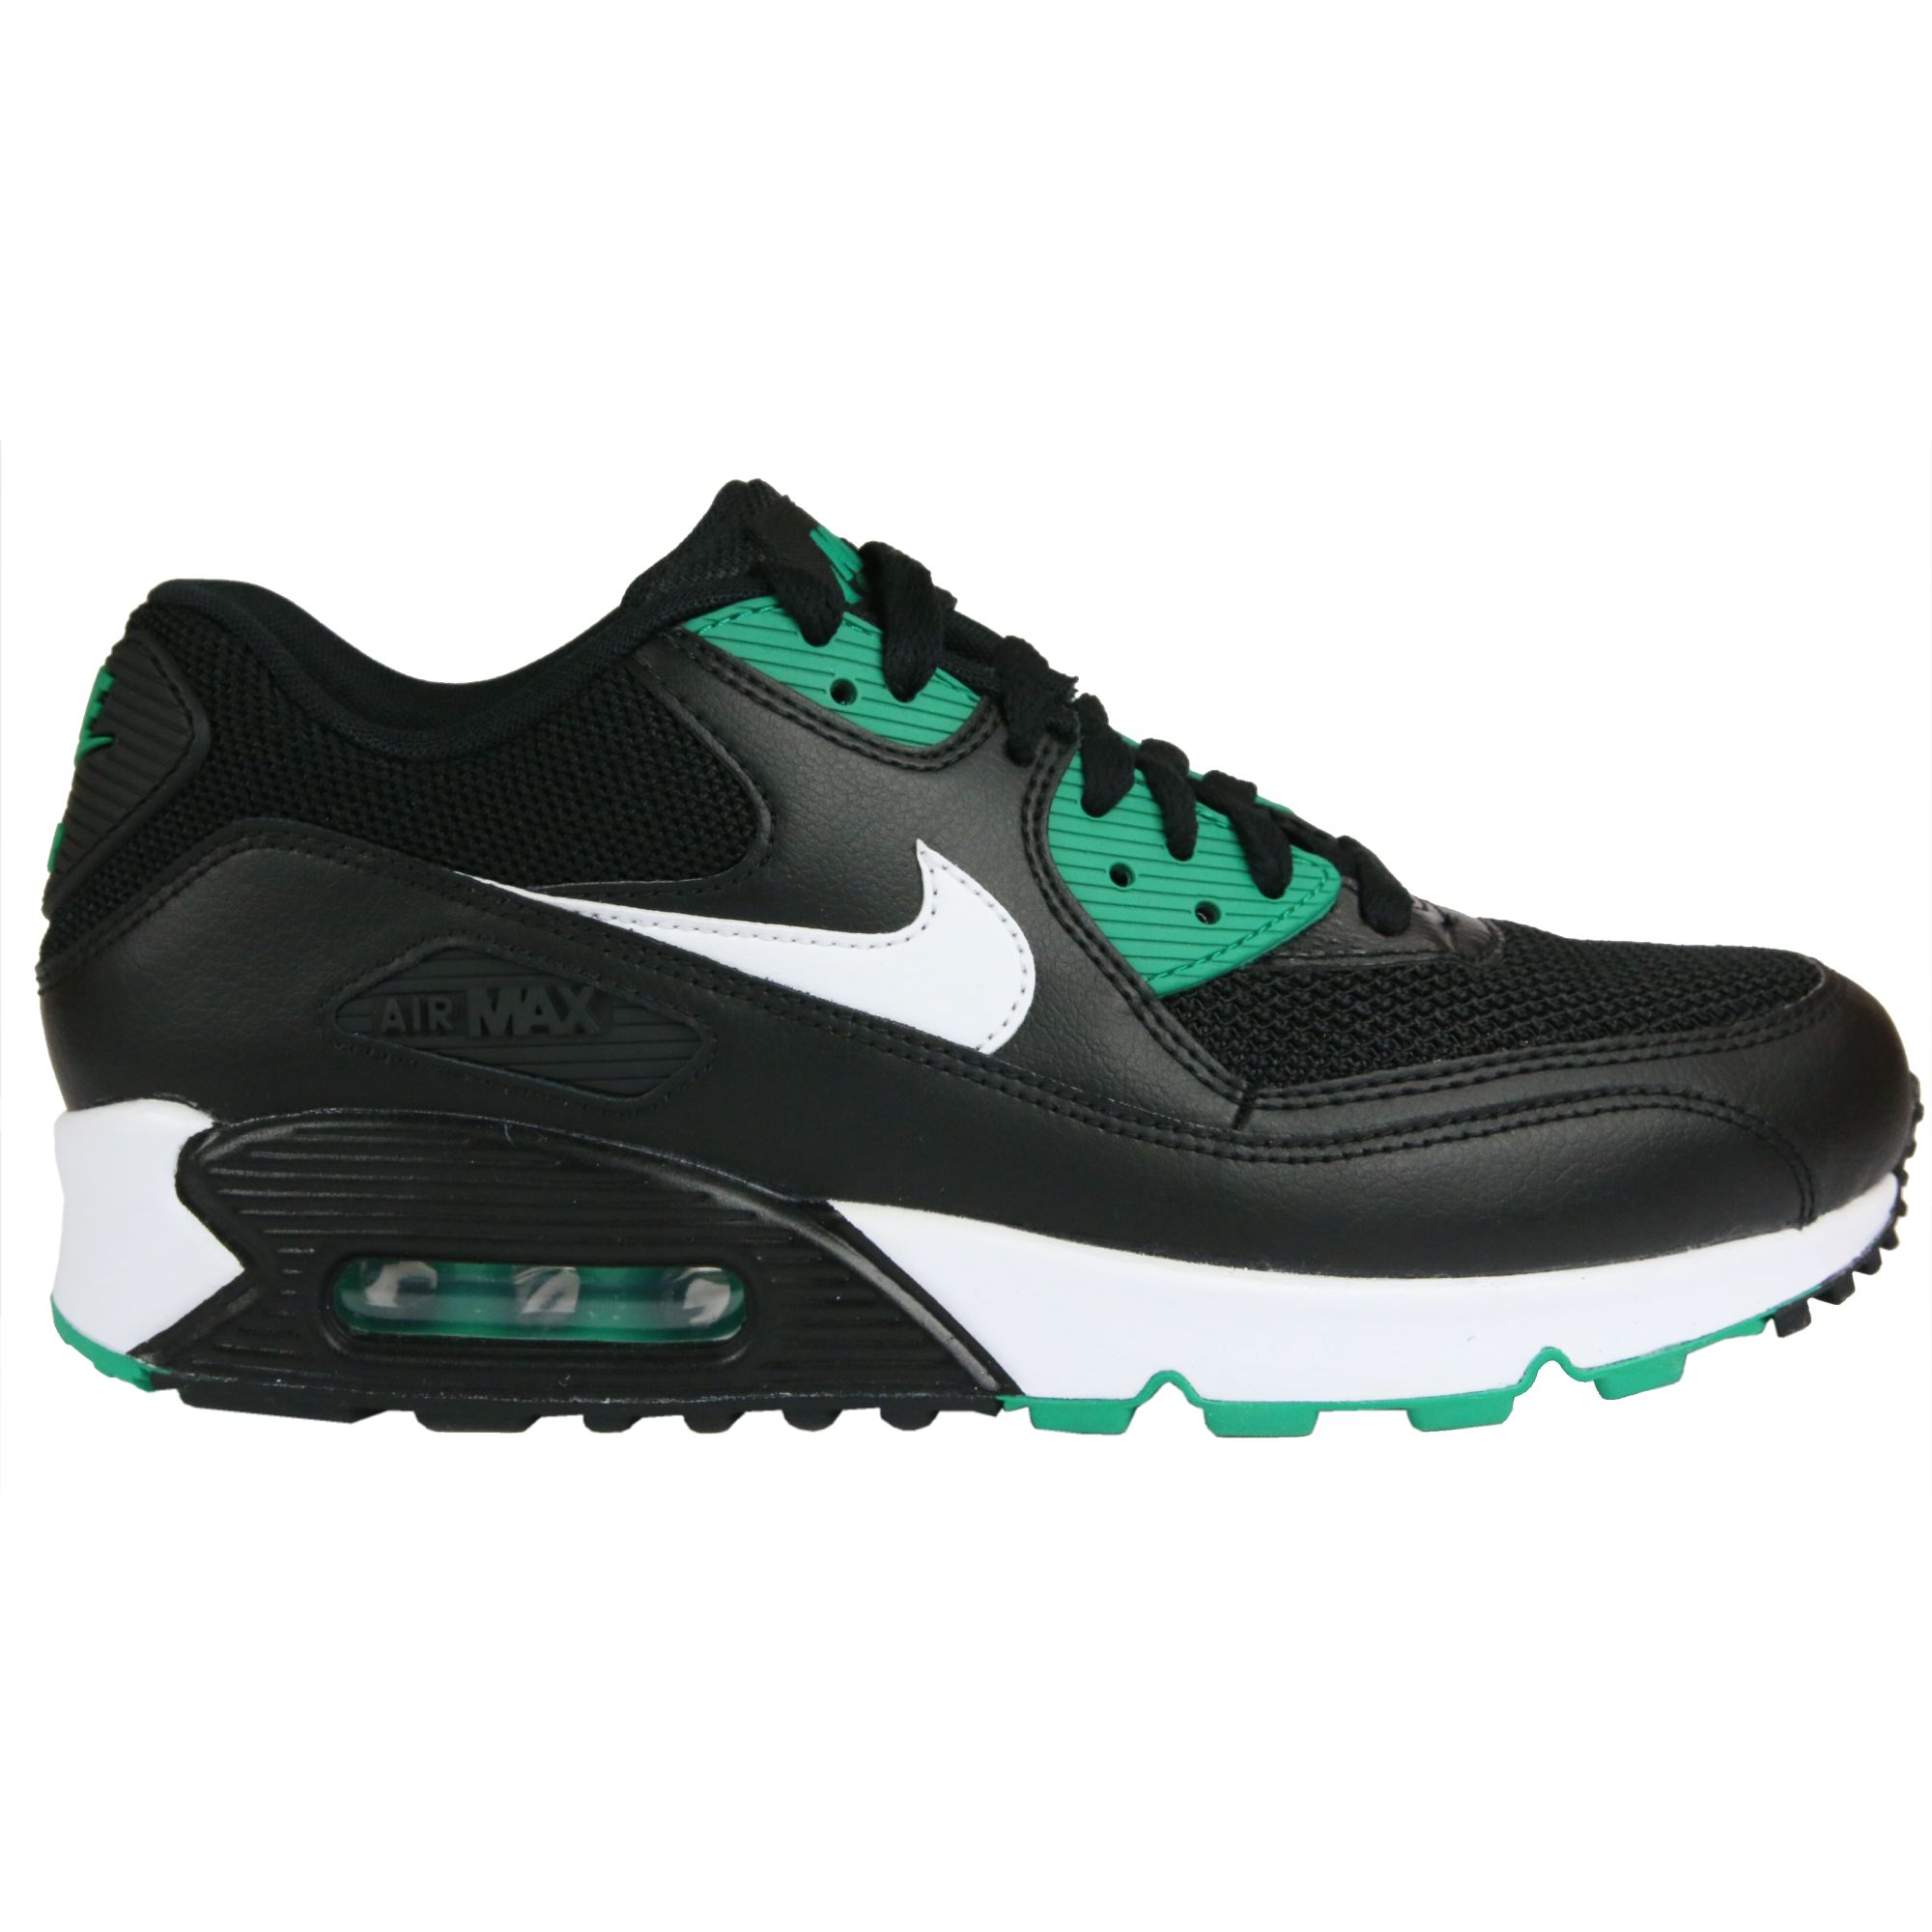 nike air max 90 essential shoes sneakers trainers leather. Black Bedroom Furniture Sets. Home Design Ideas